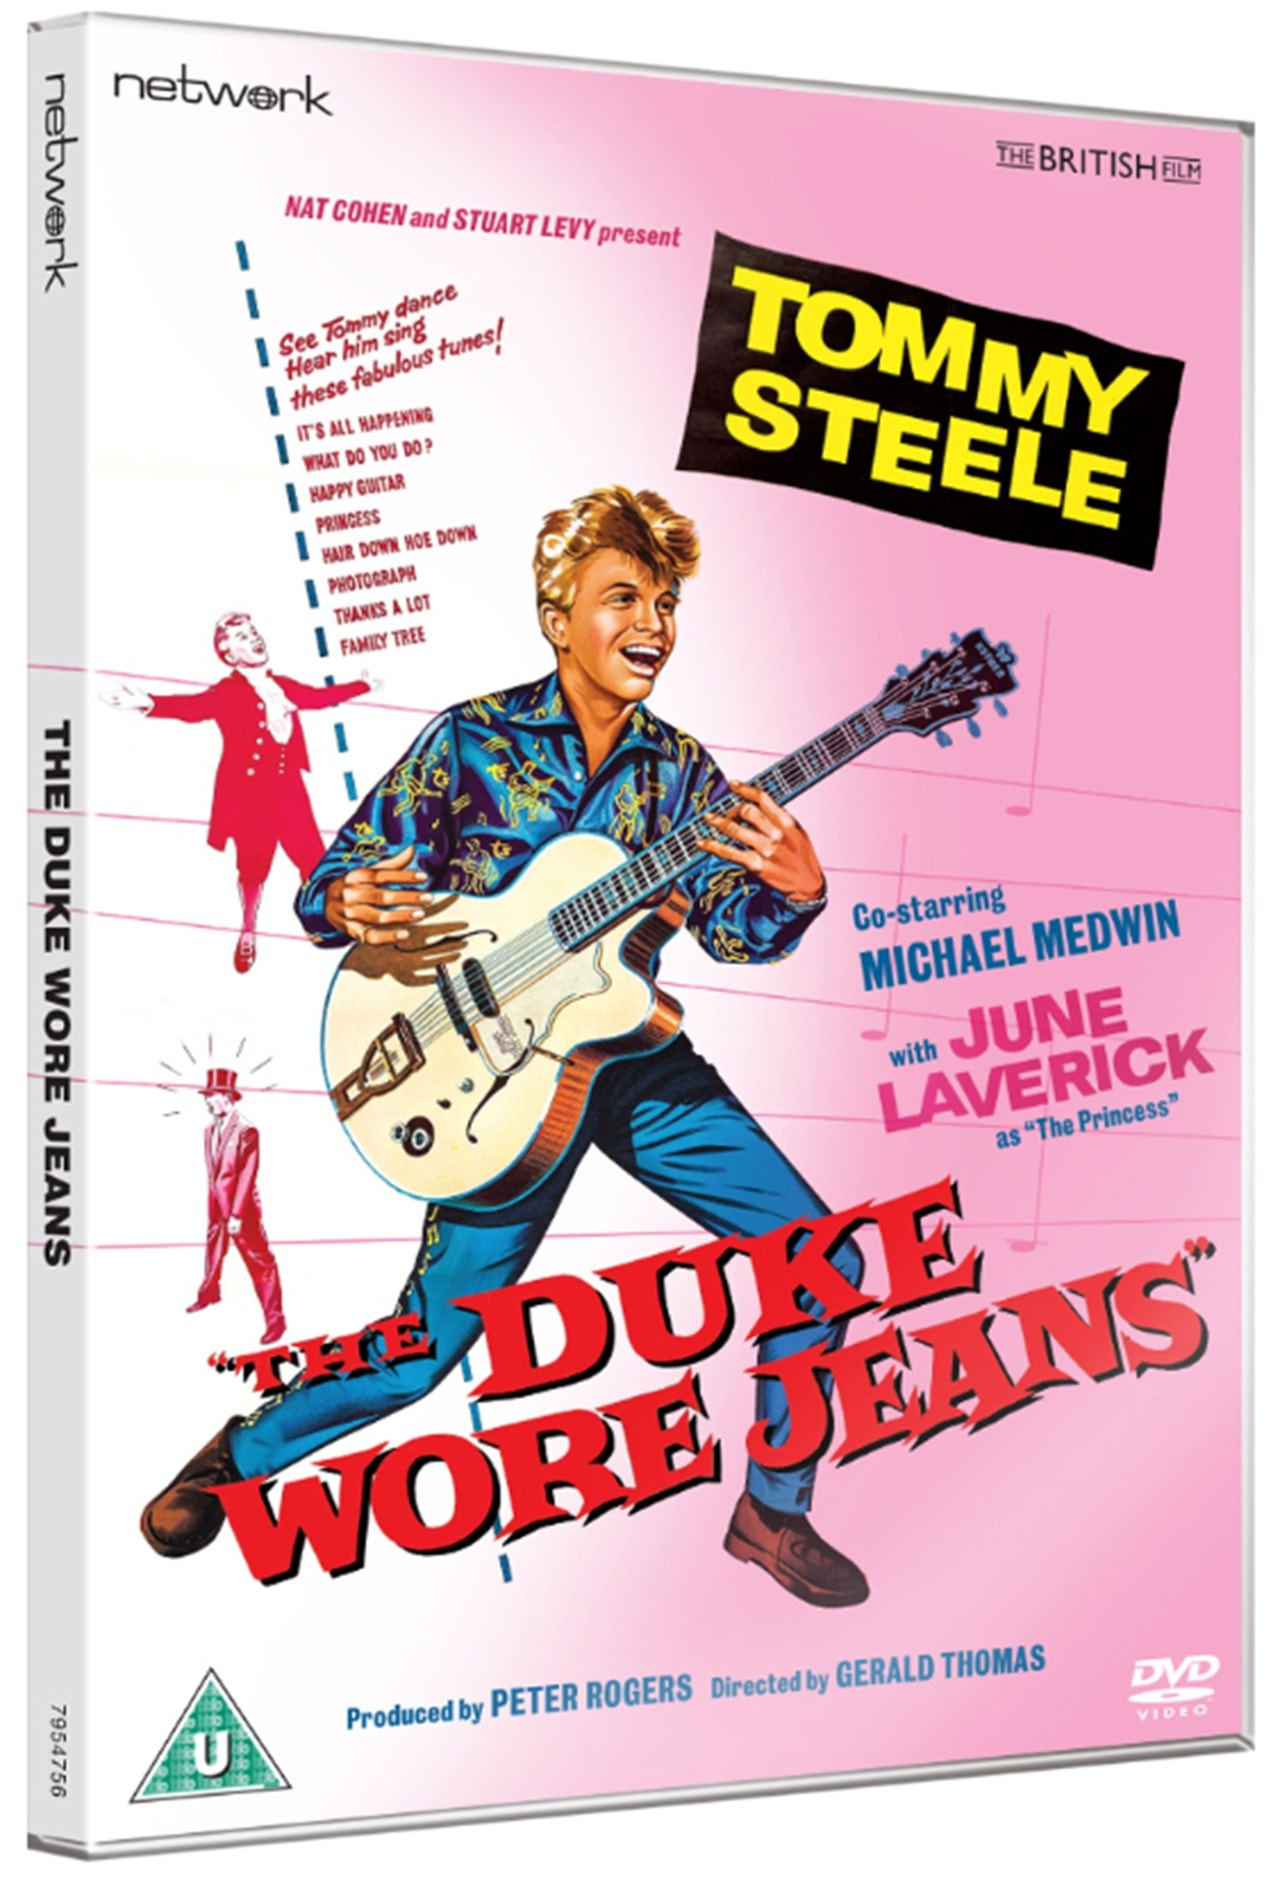 The Duke Wore Jeans - 2